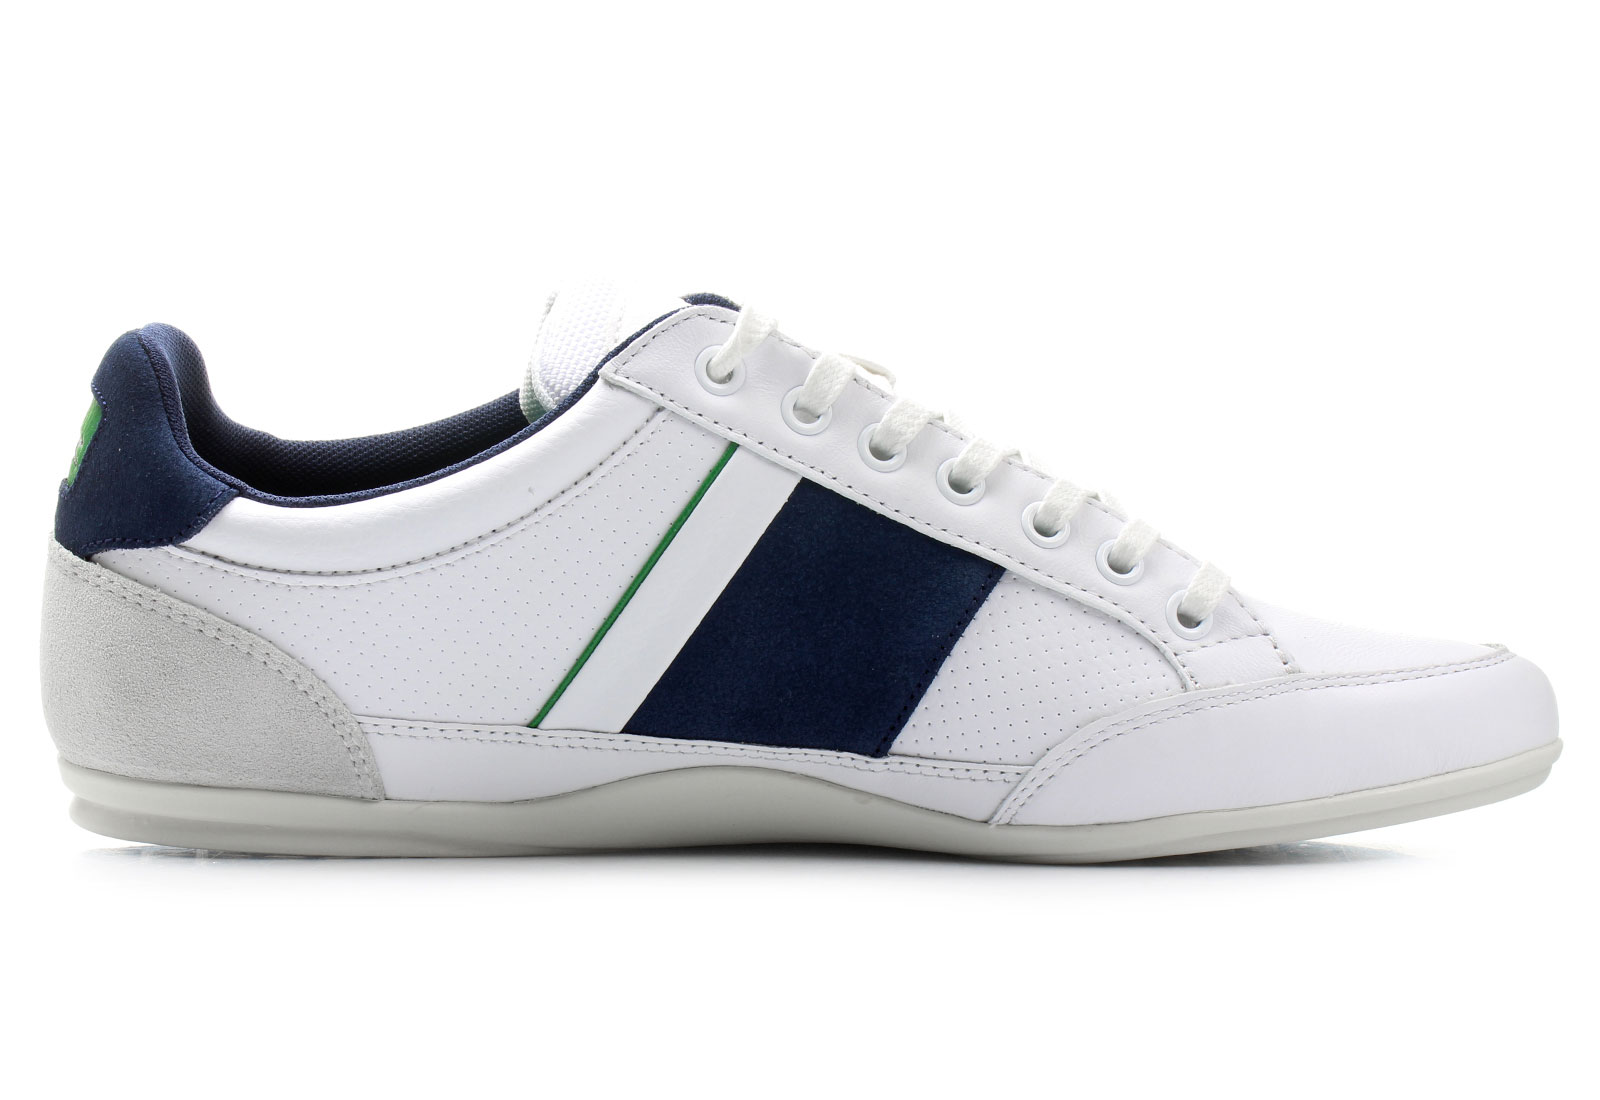 Lacoste Shoes Chaymon 162spm0081 042 Online Shop For